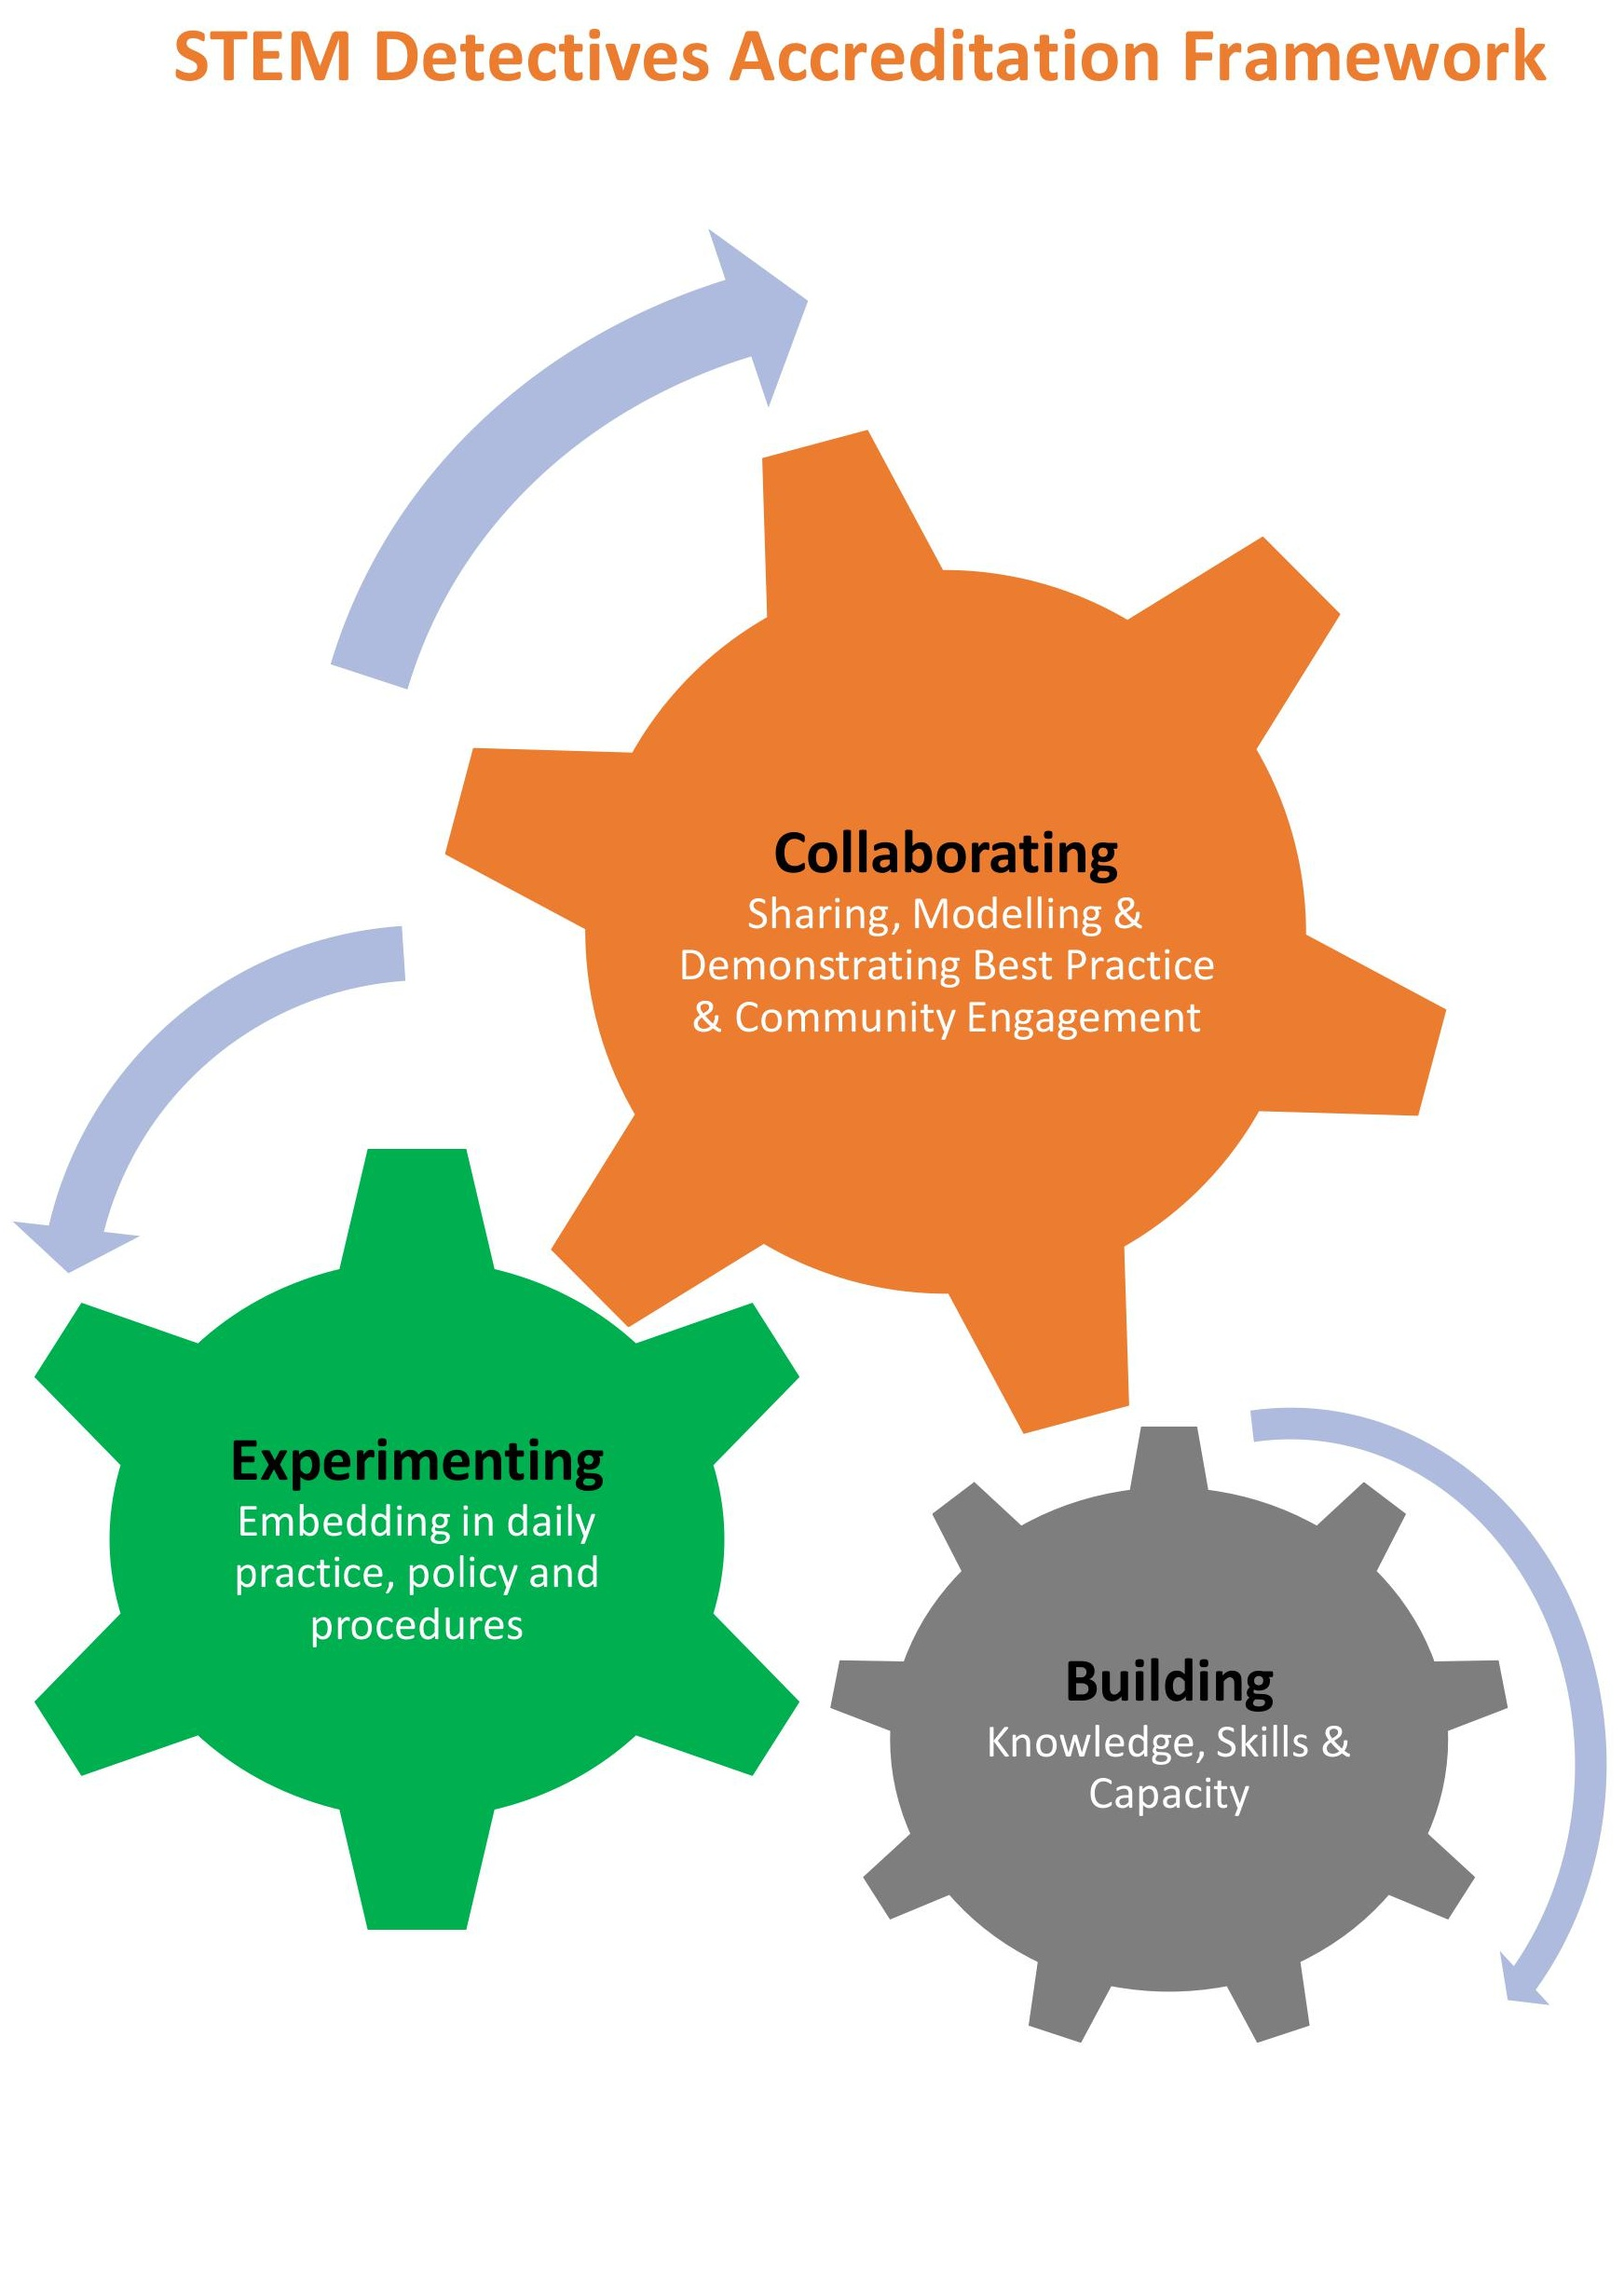 STEM+Accreditation+Framework.jpg